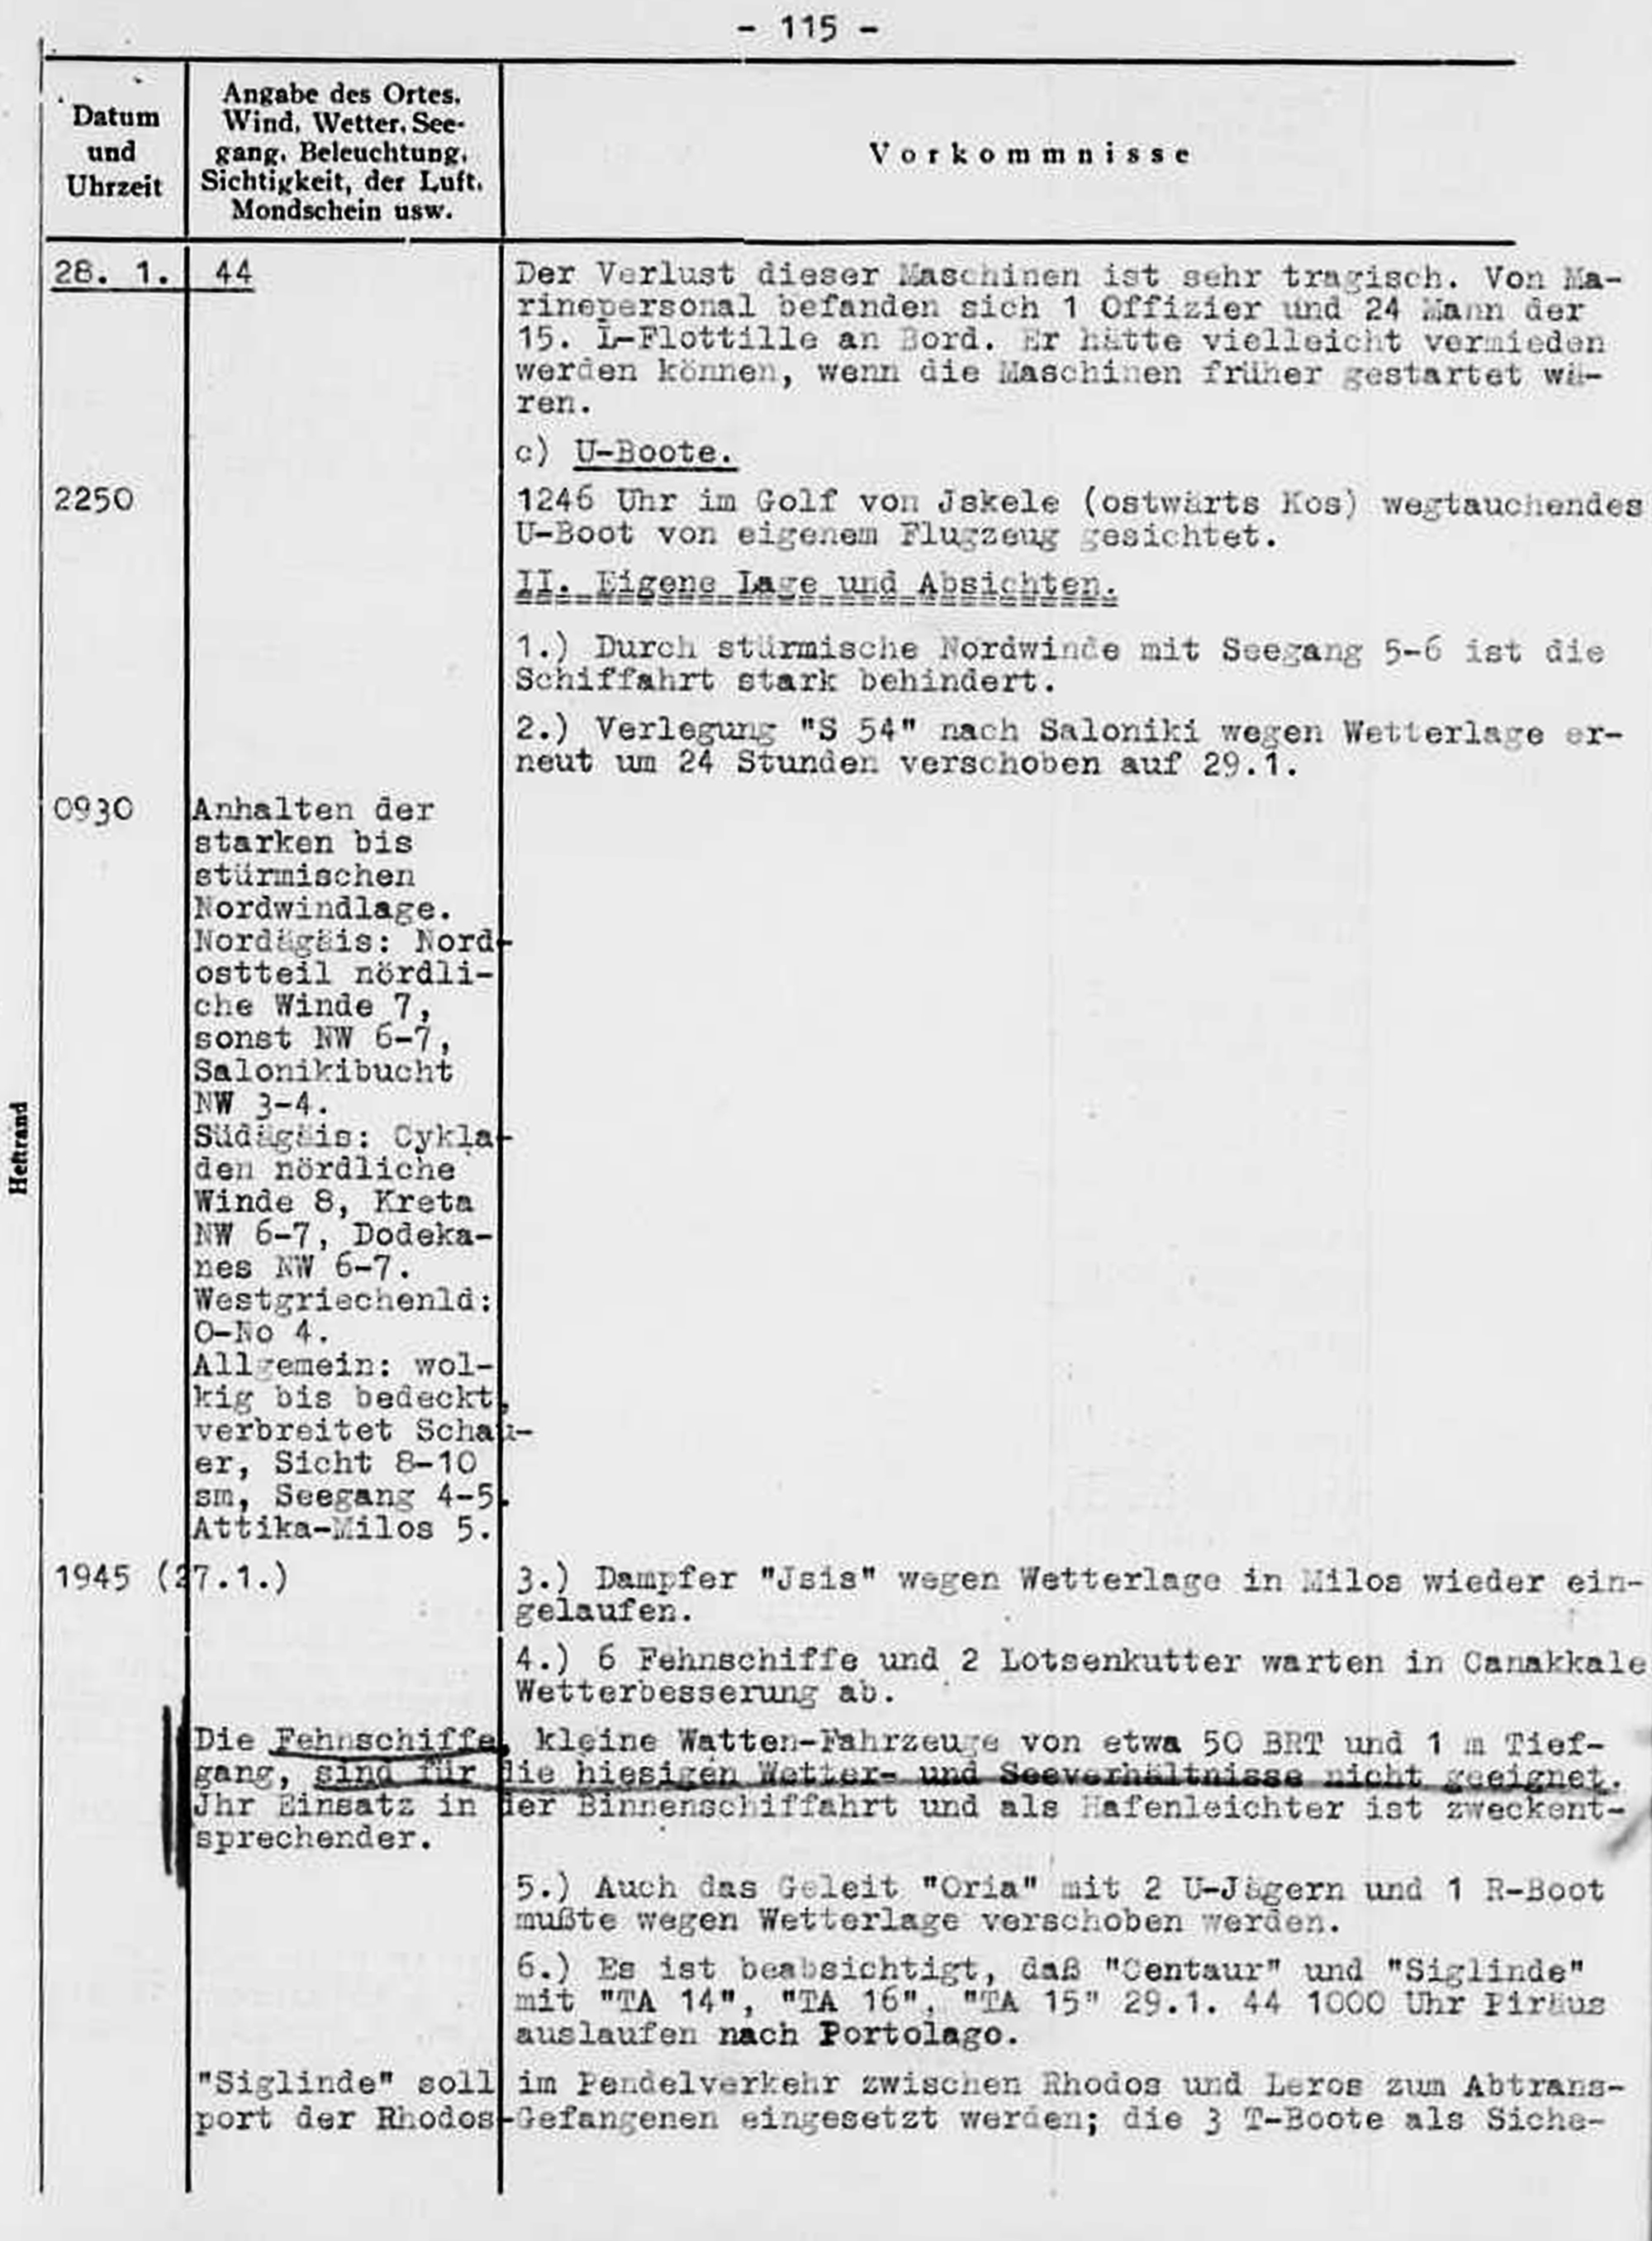 Another page of the same German report, as found by respected researcher Mr. Thanos Antonelos